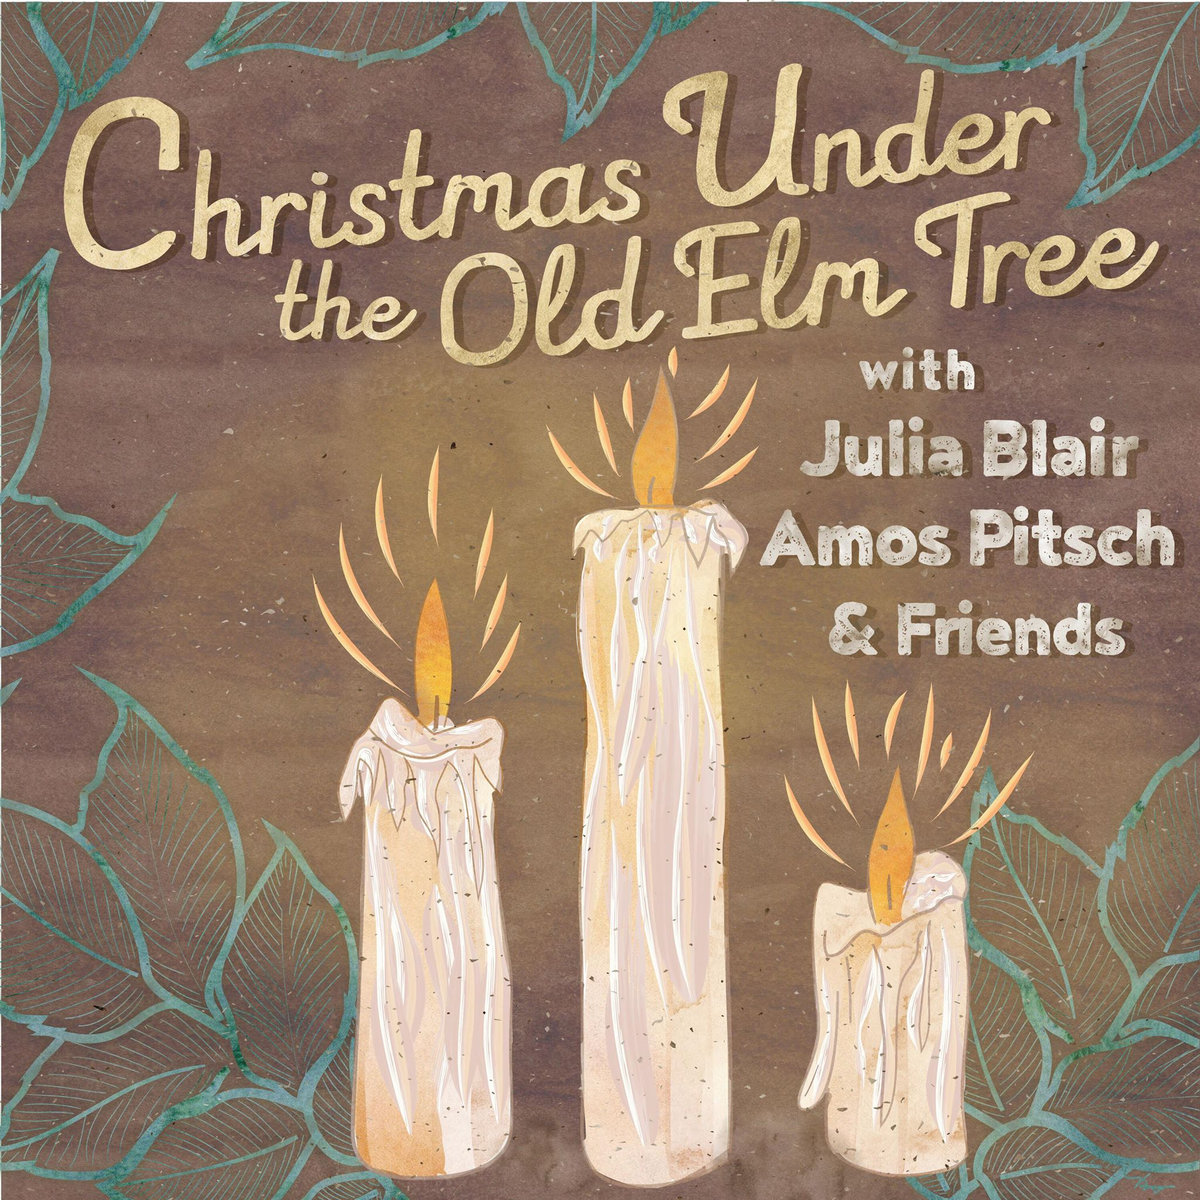 Christmas Under the Old Elm Tree artwork